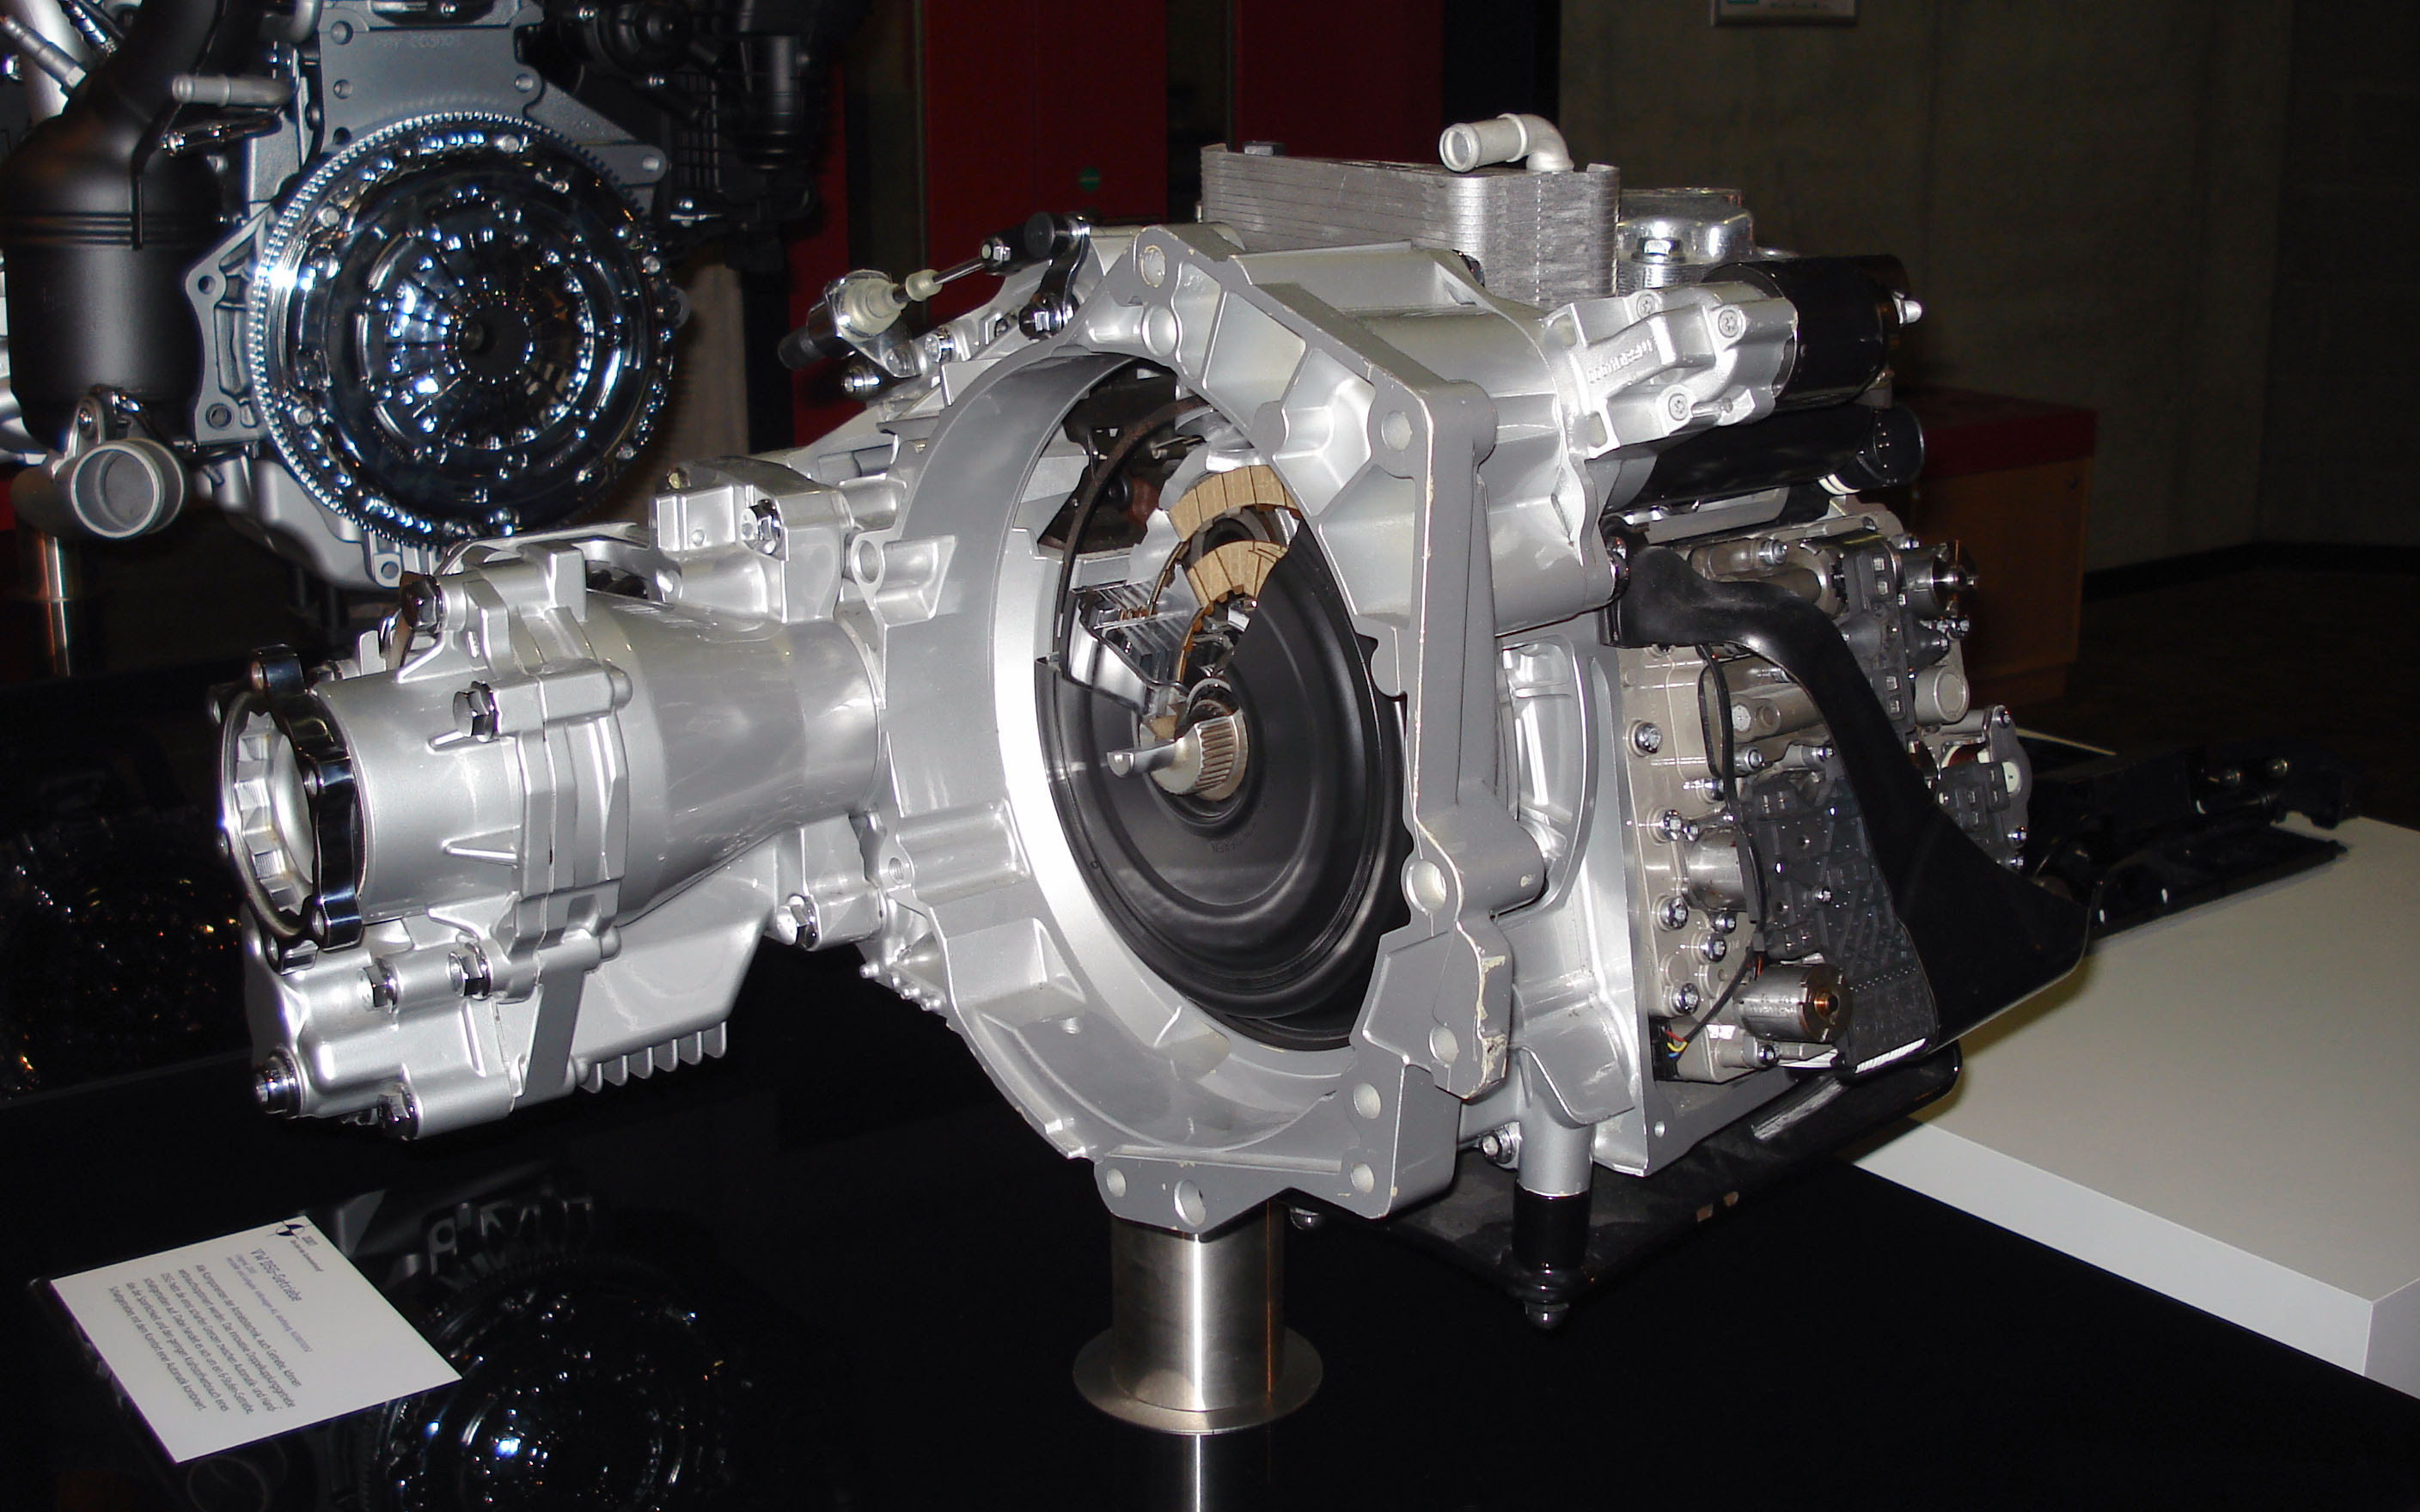 vw golf alternator wiring diagram for two way light switch uk direct shift gearbox wikipedia